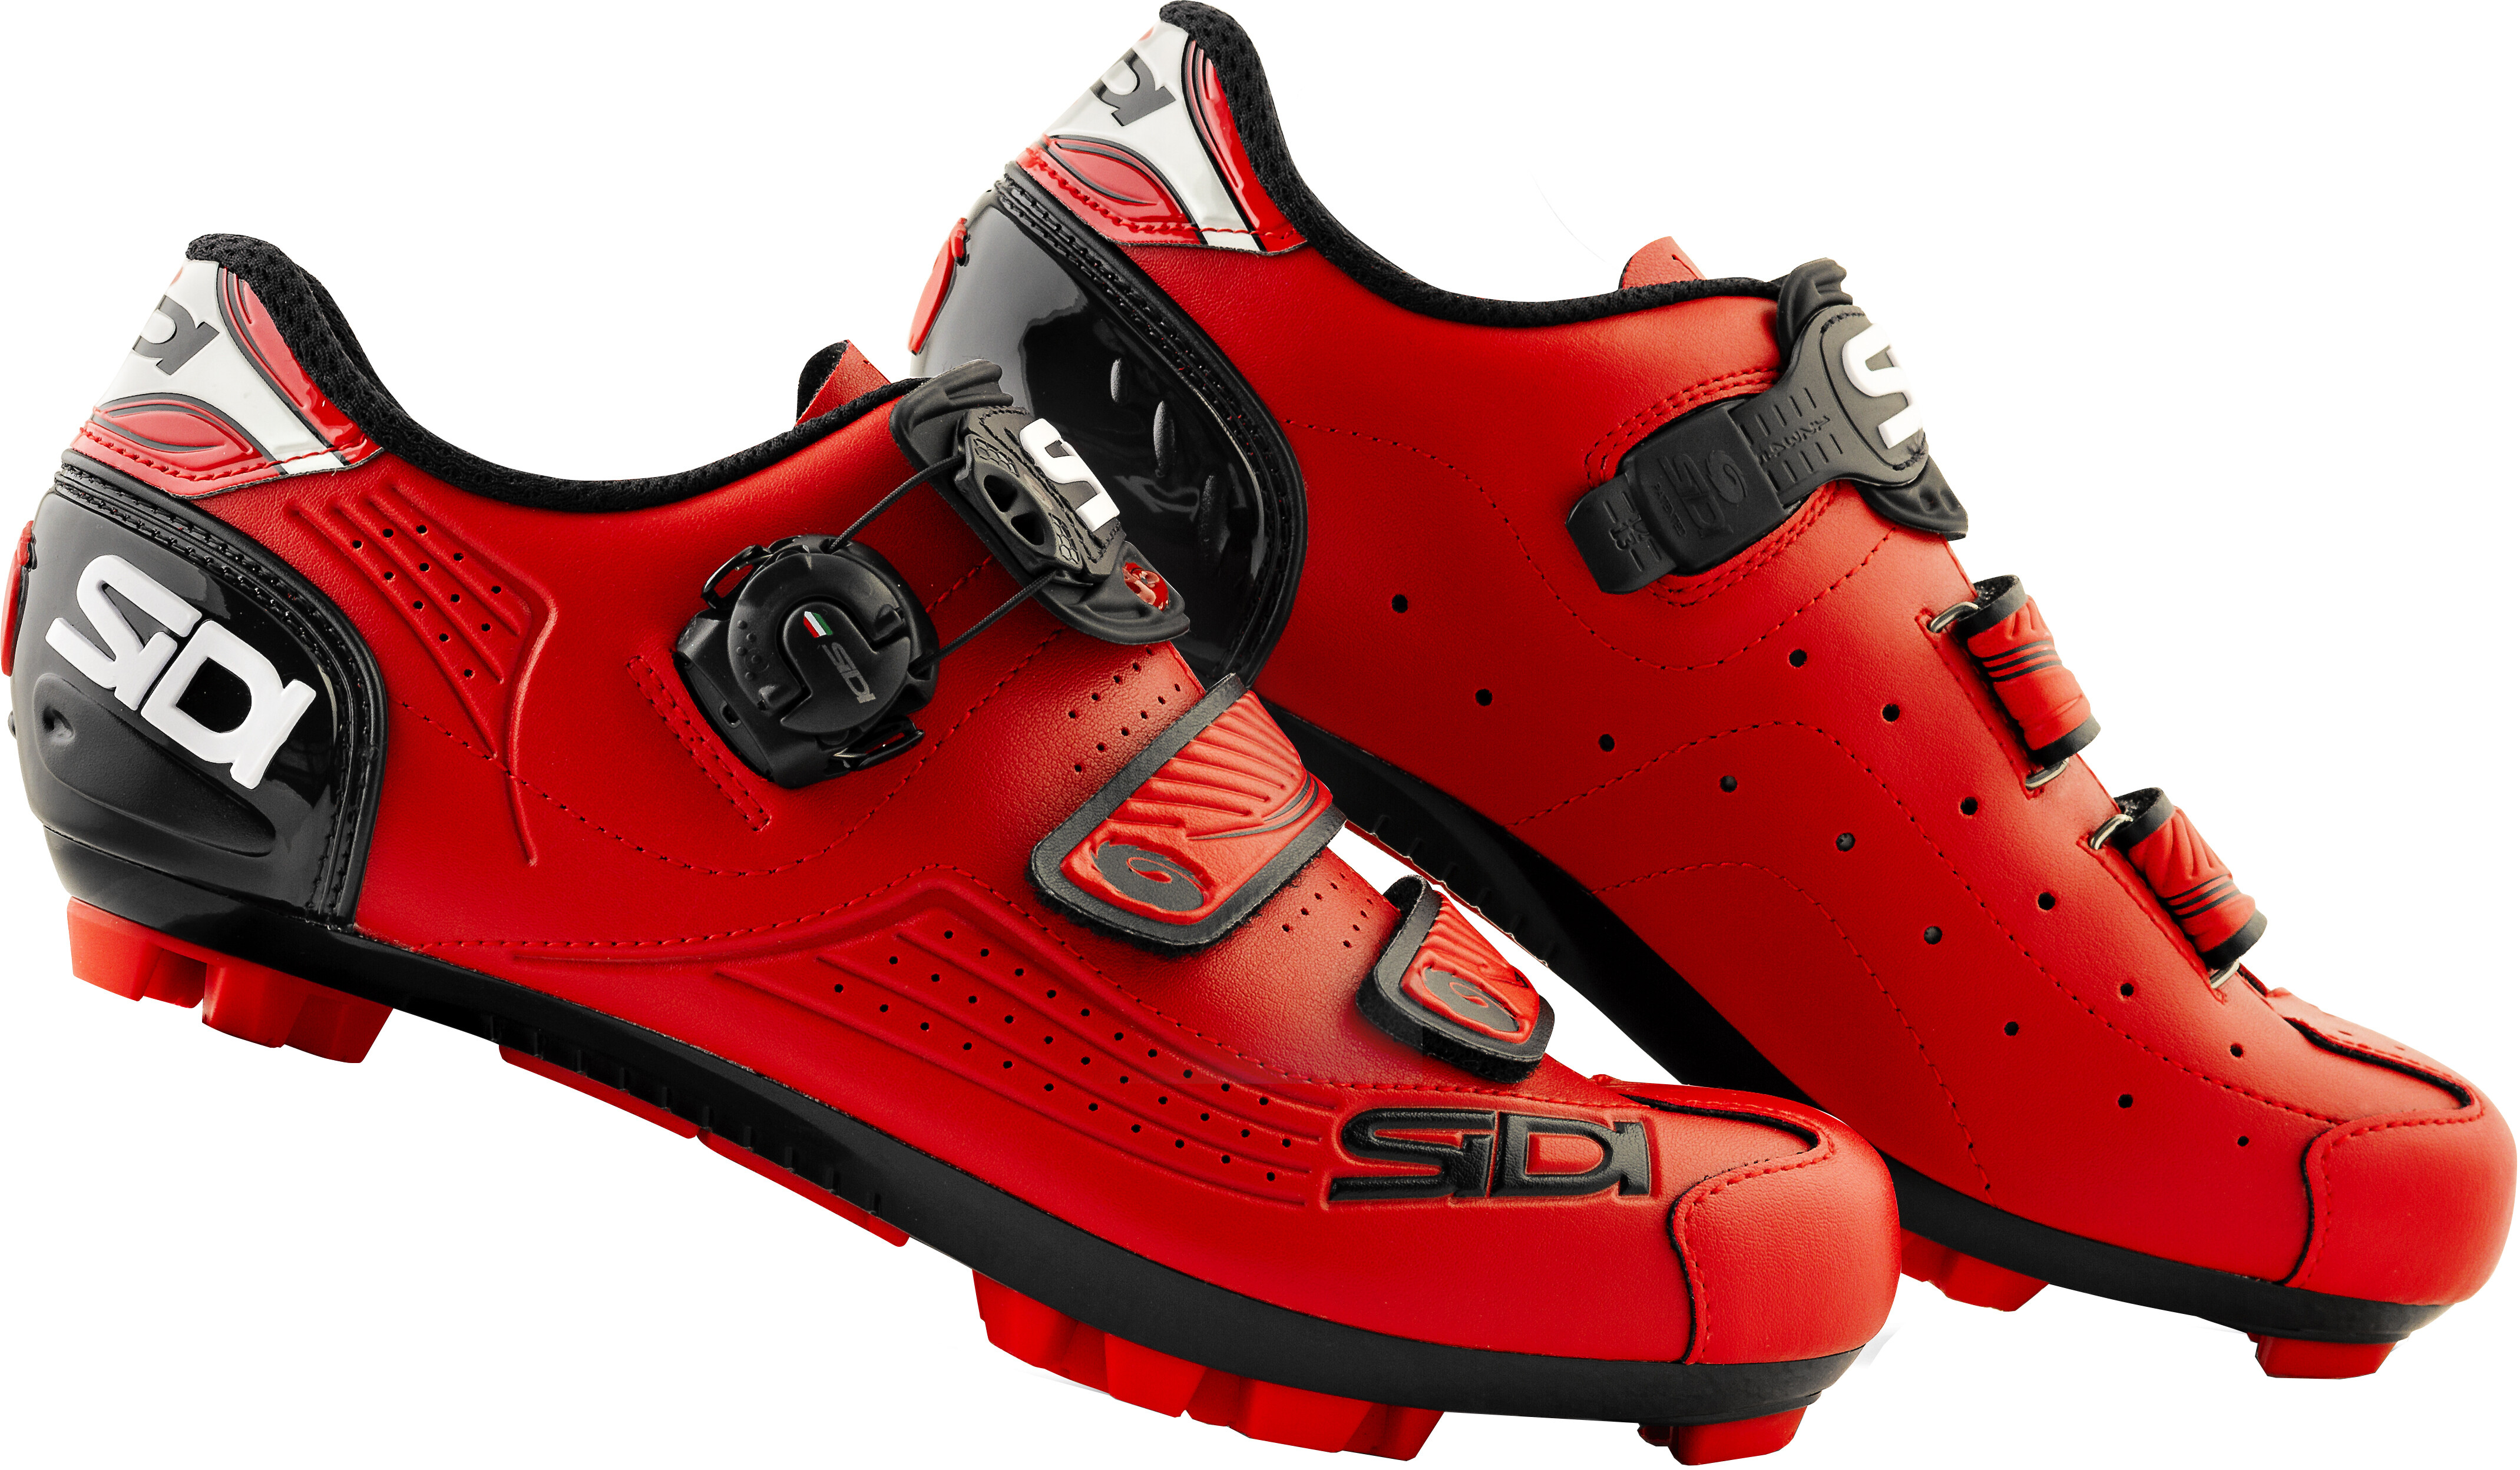 sidi mtb trace schuhe total red online bei. Black Bedroom Furniture Sets. Home Design Ideas